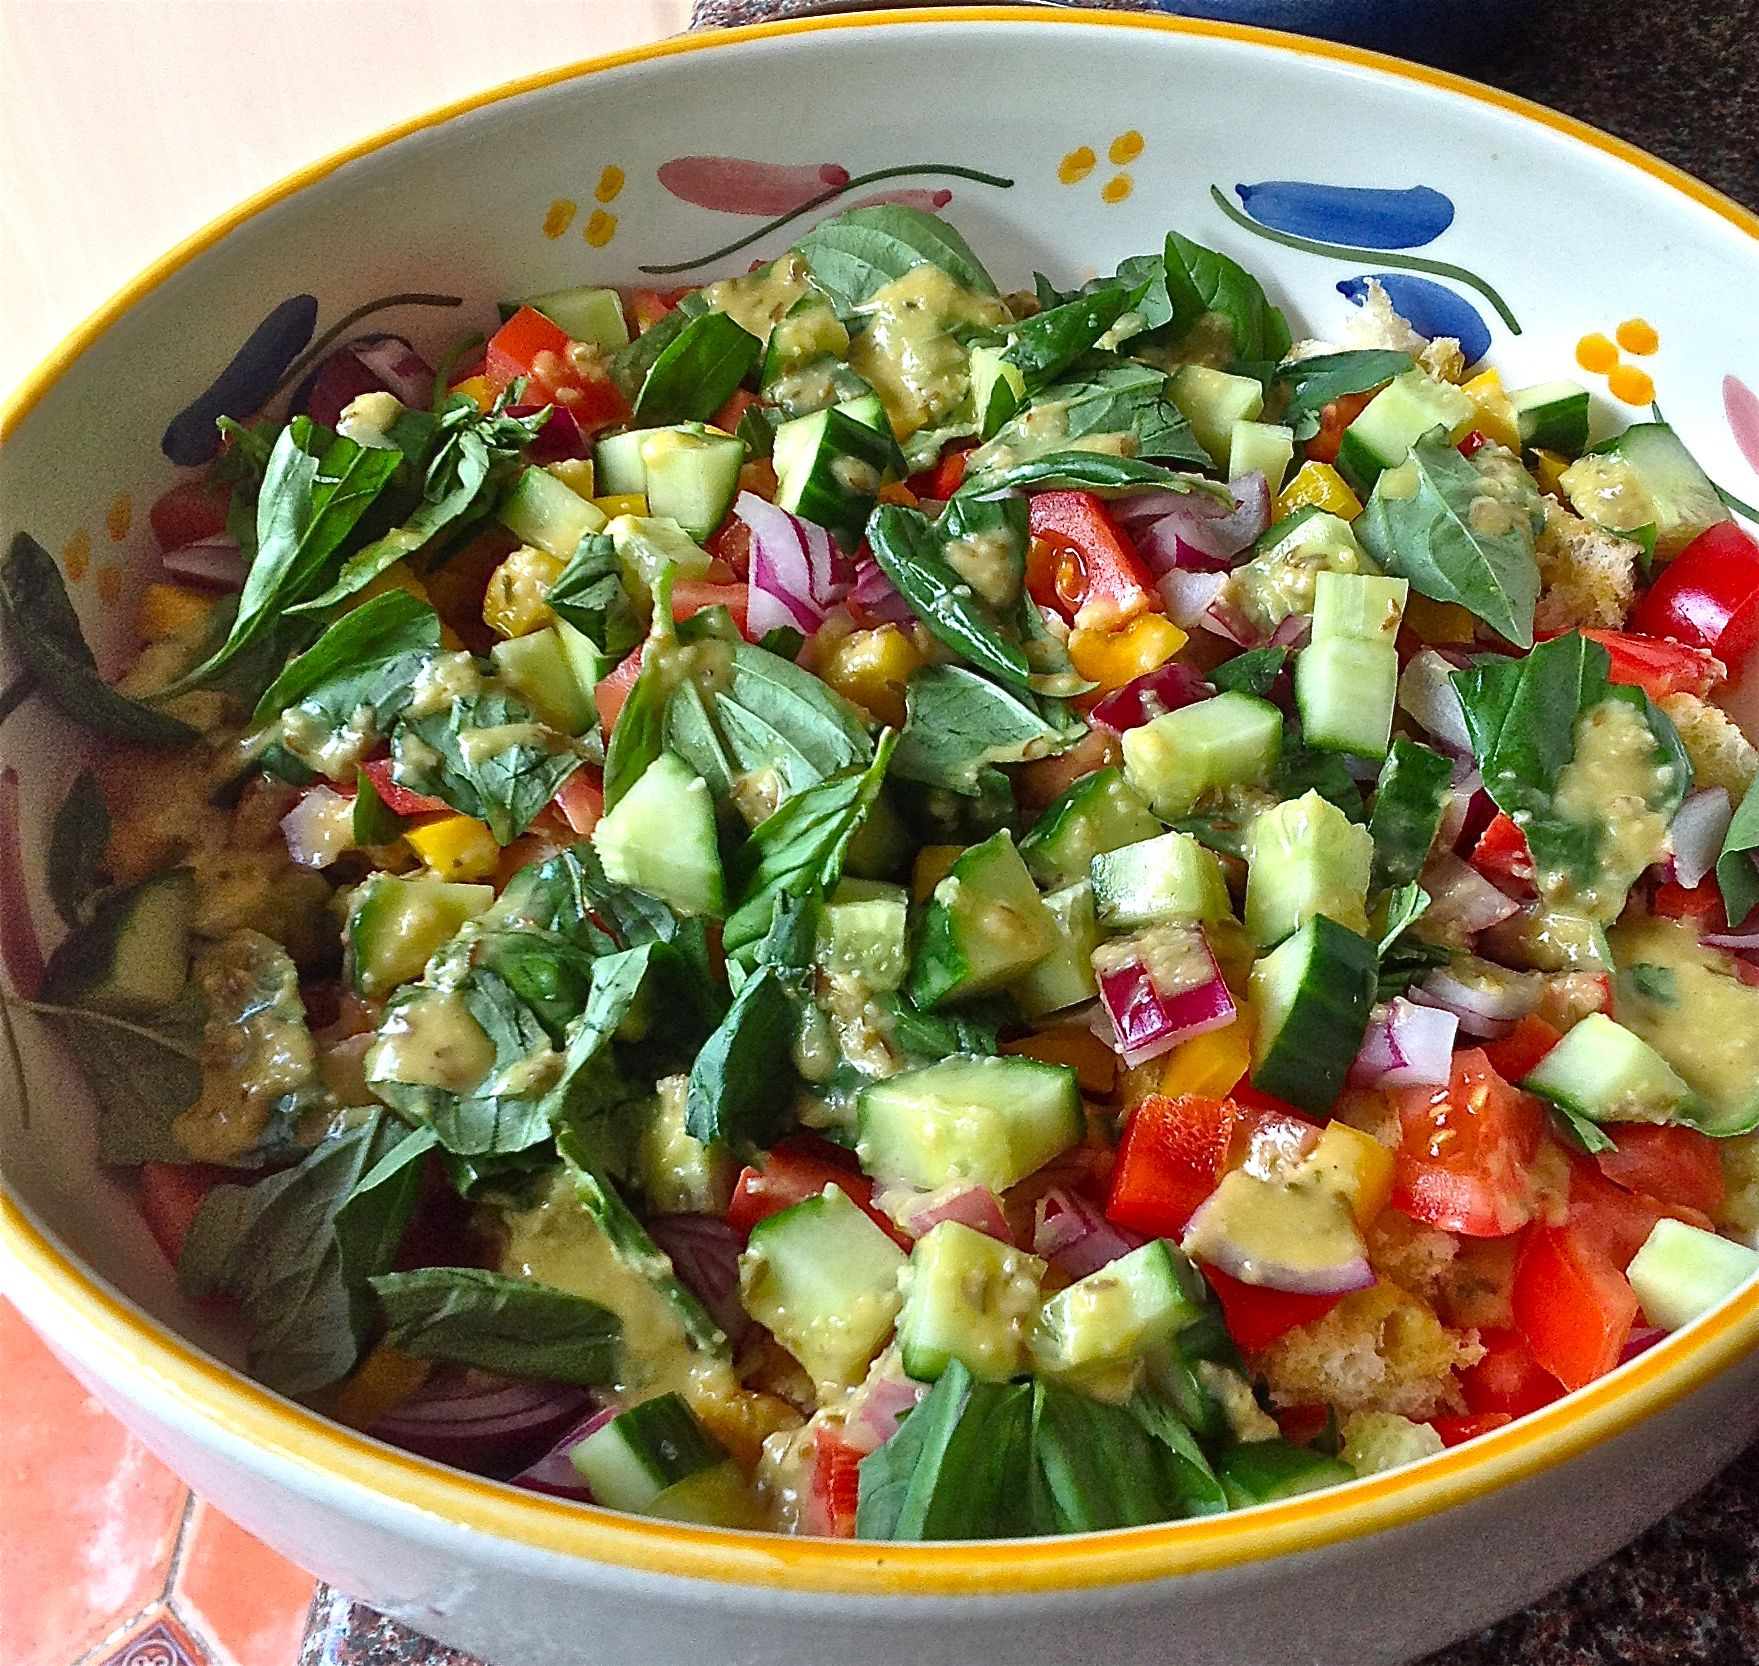 Gazpacho salad with all the tastes of gazpacho in the form of a salad